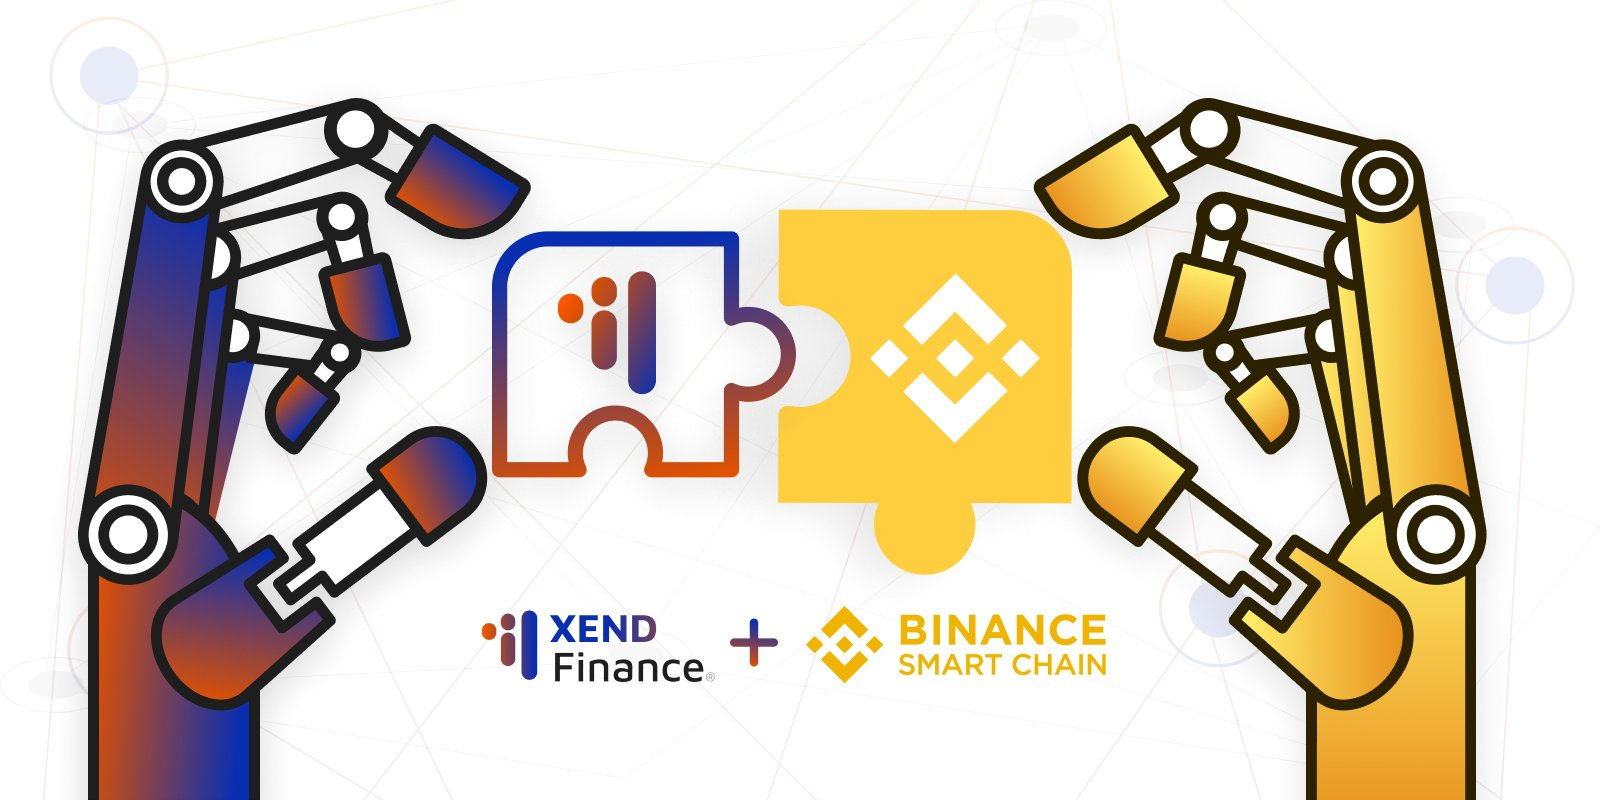 Xend Finance, The First African DeFi Credit Union Platform, Launches an Incentivized Testnet on the Binance Smart Chain